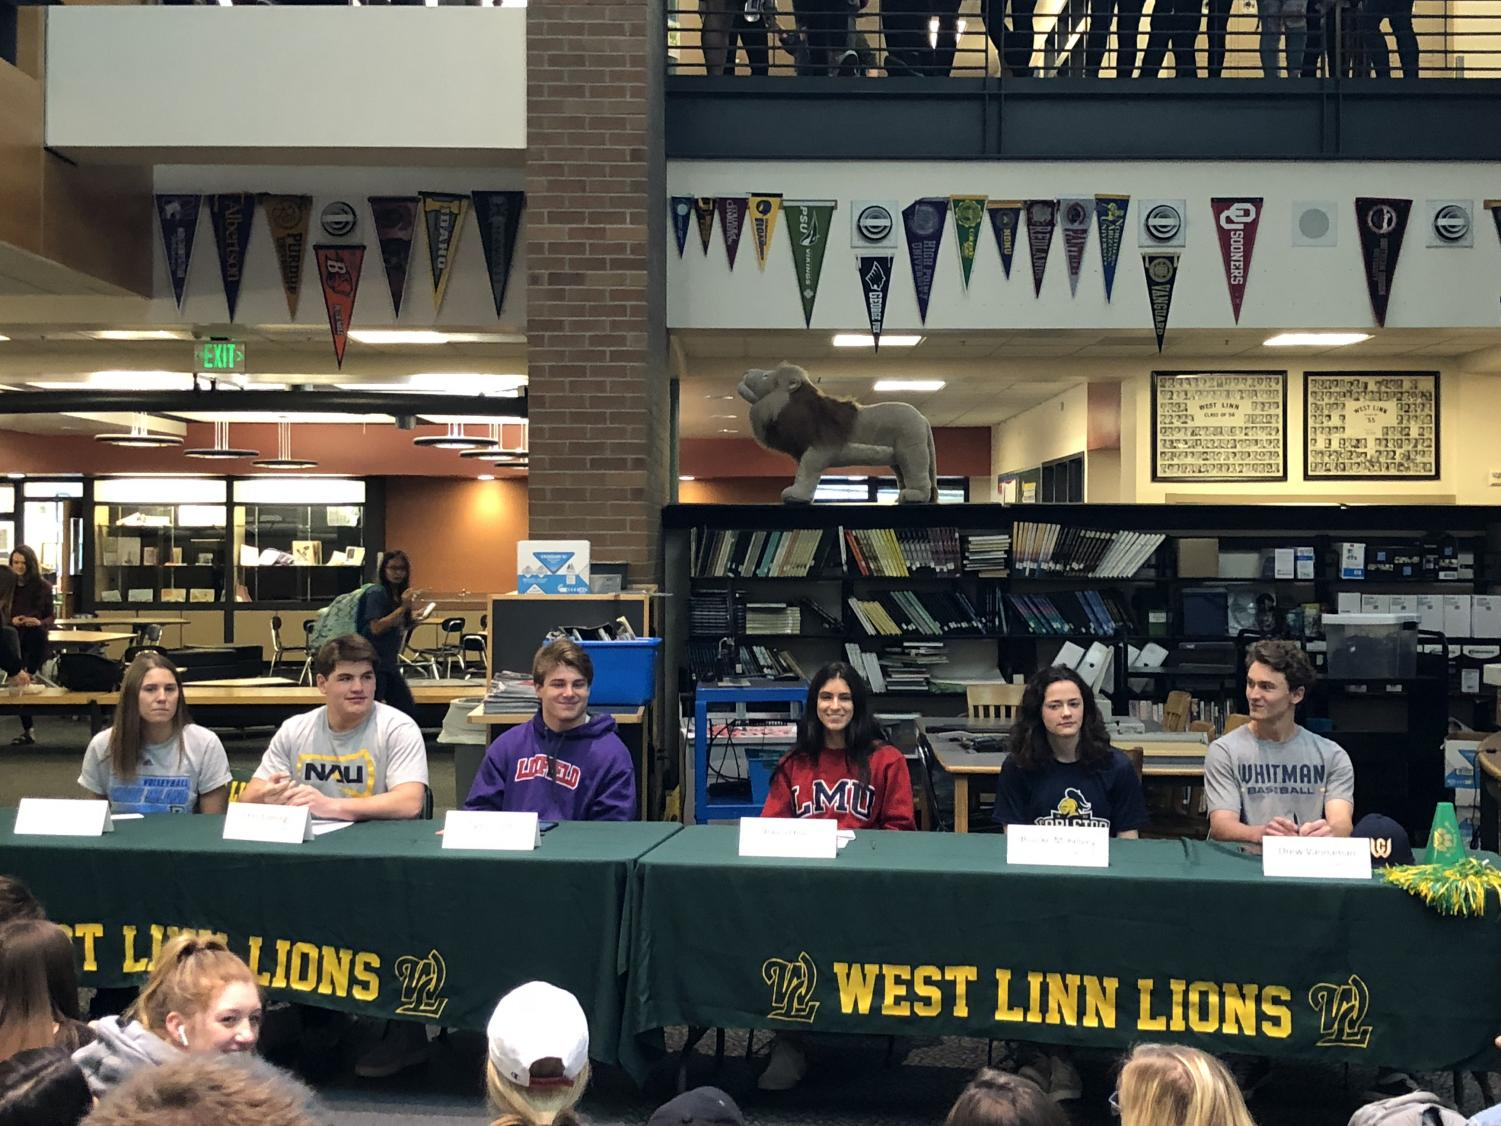 Six senior athletes sign their National Letters of Intent to play college sports on April 11. The NLI is a binding document that requires one full year of athletic participation.